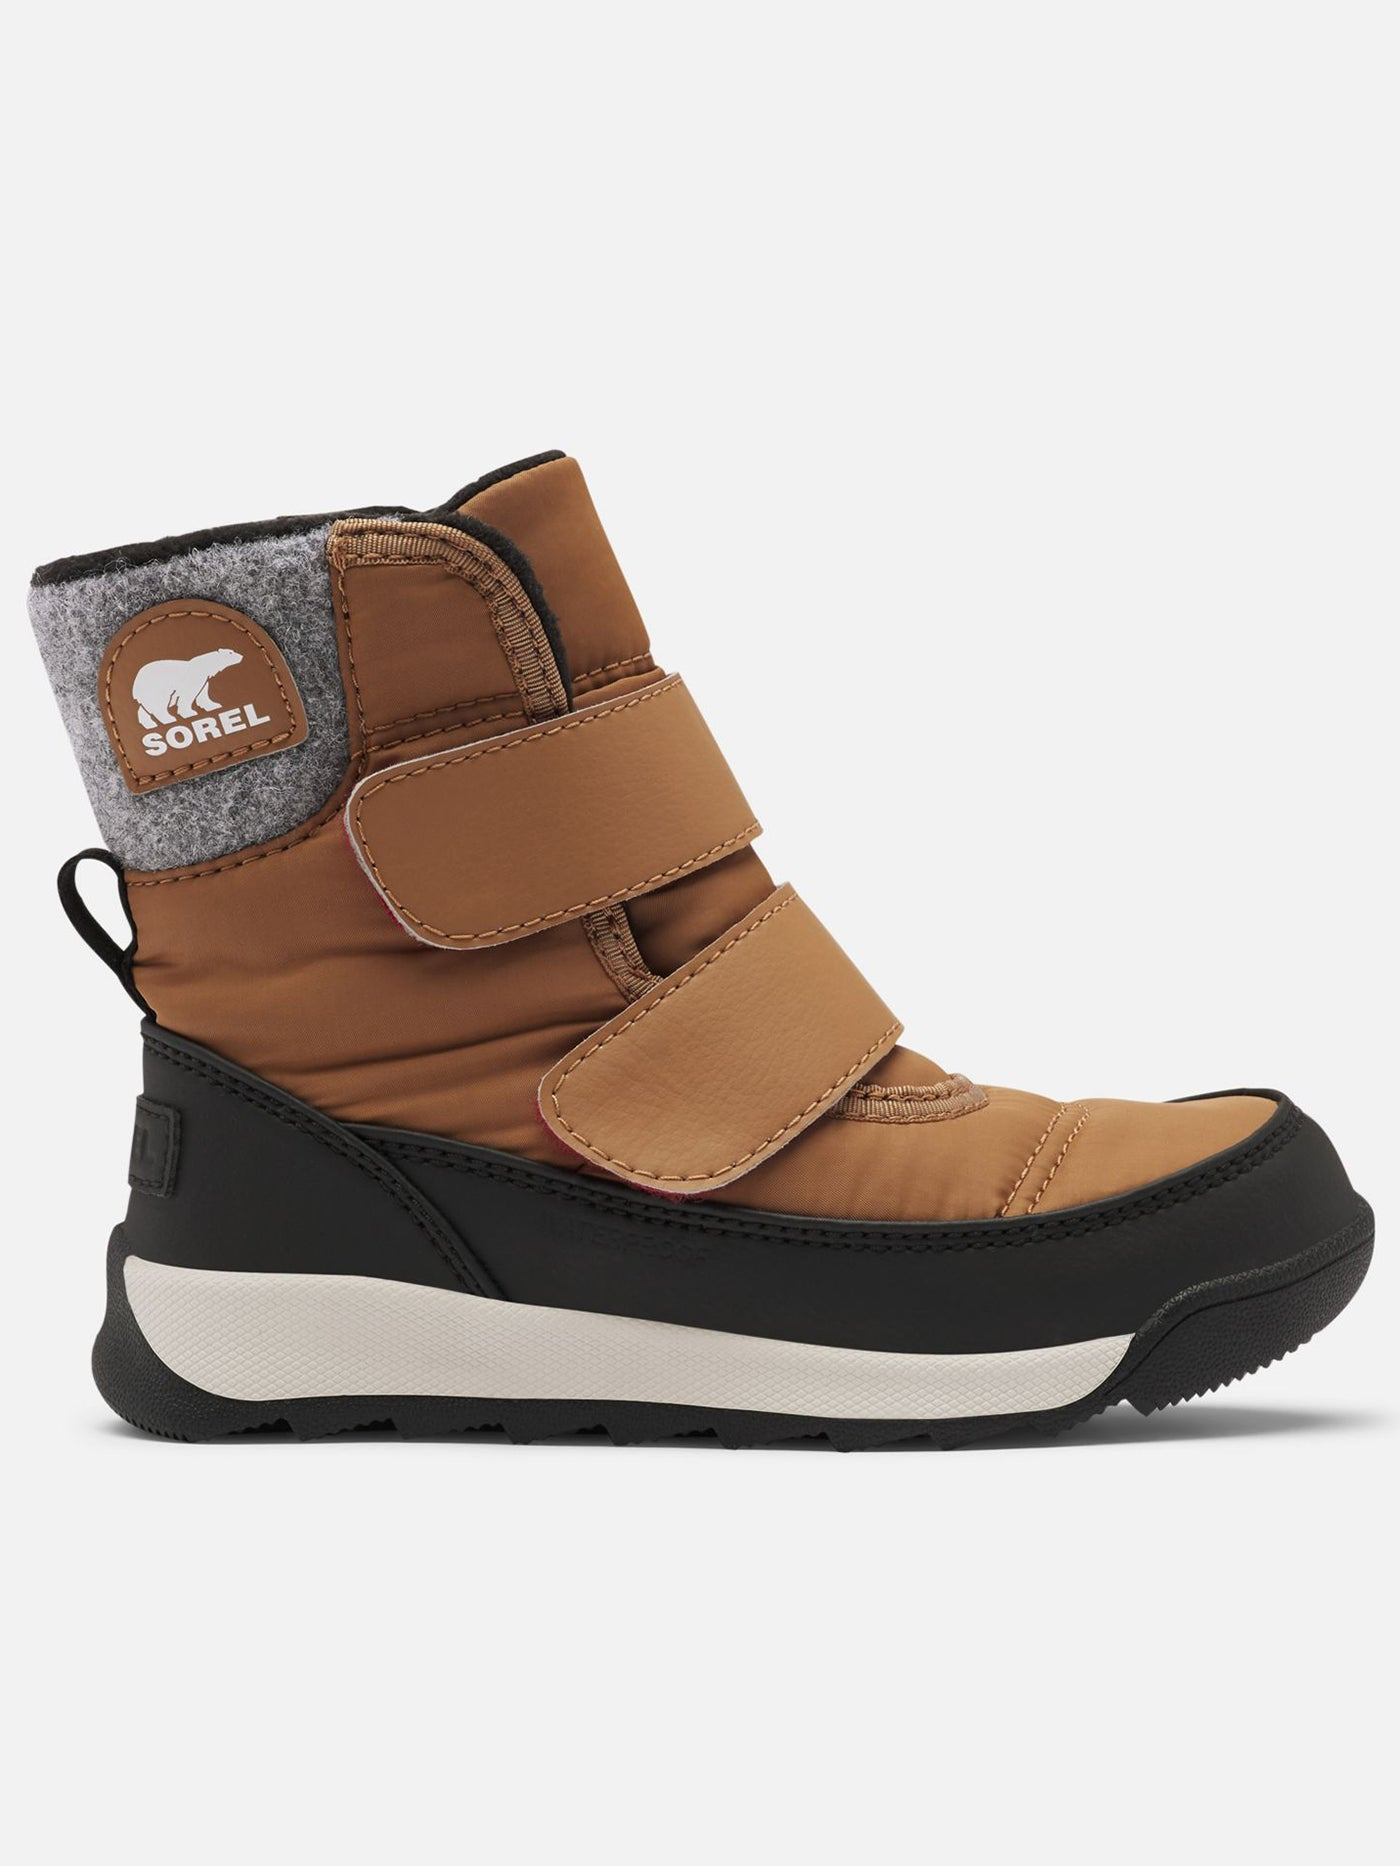 Whitney II Strap Boots (Little Kids)